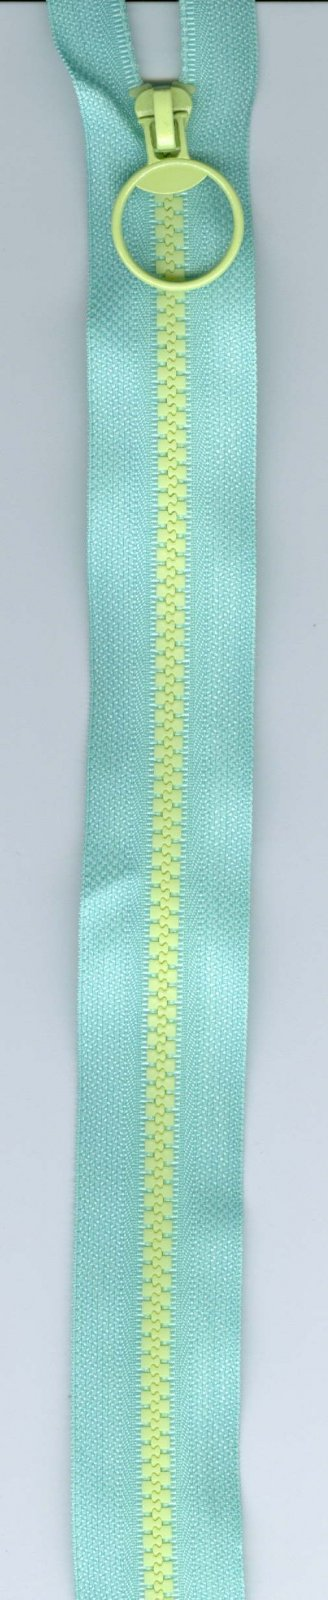 14 Zipper #5 - Mint with Yellow Teeth